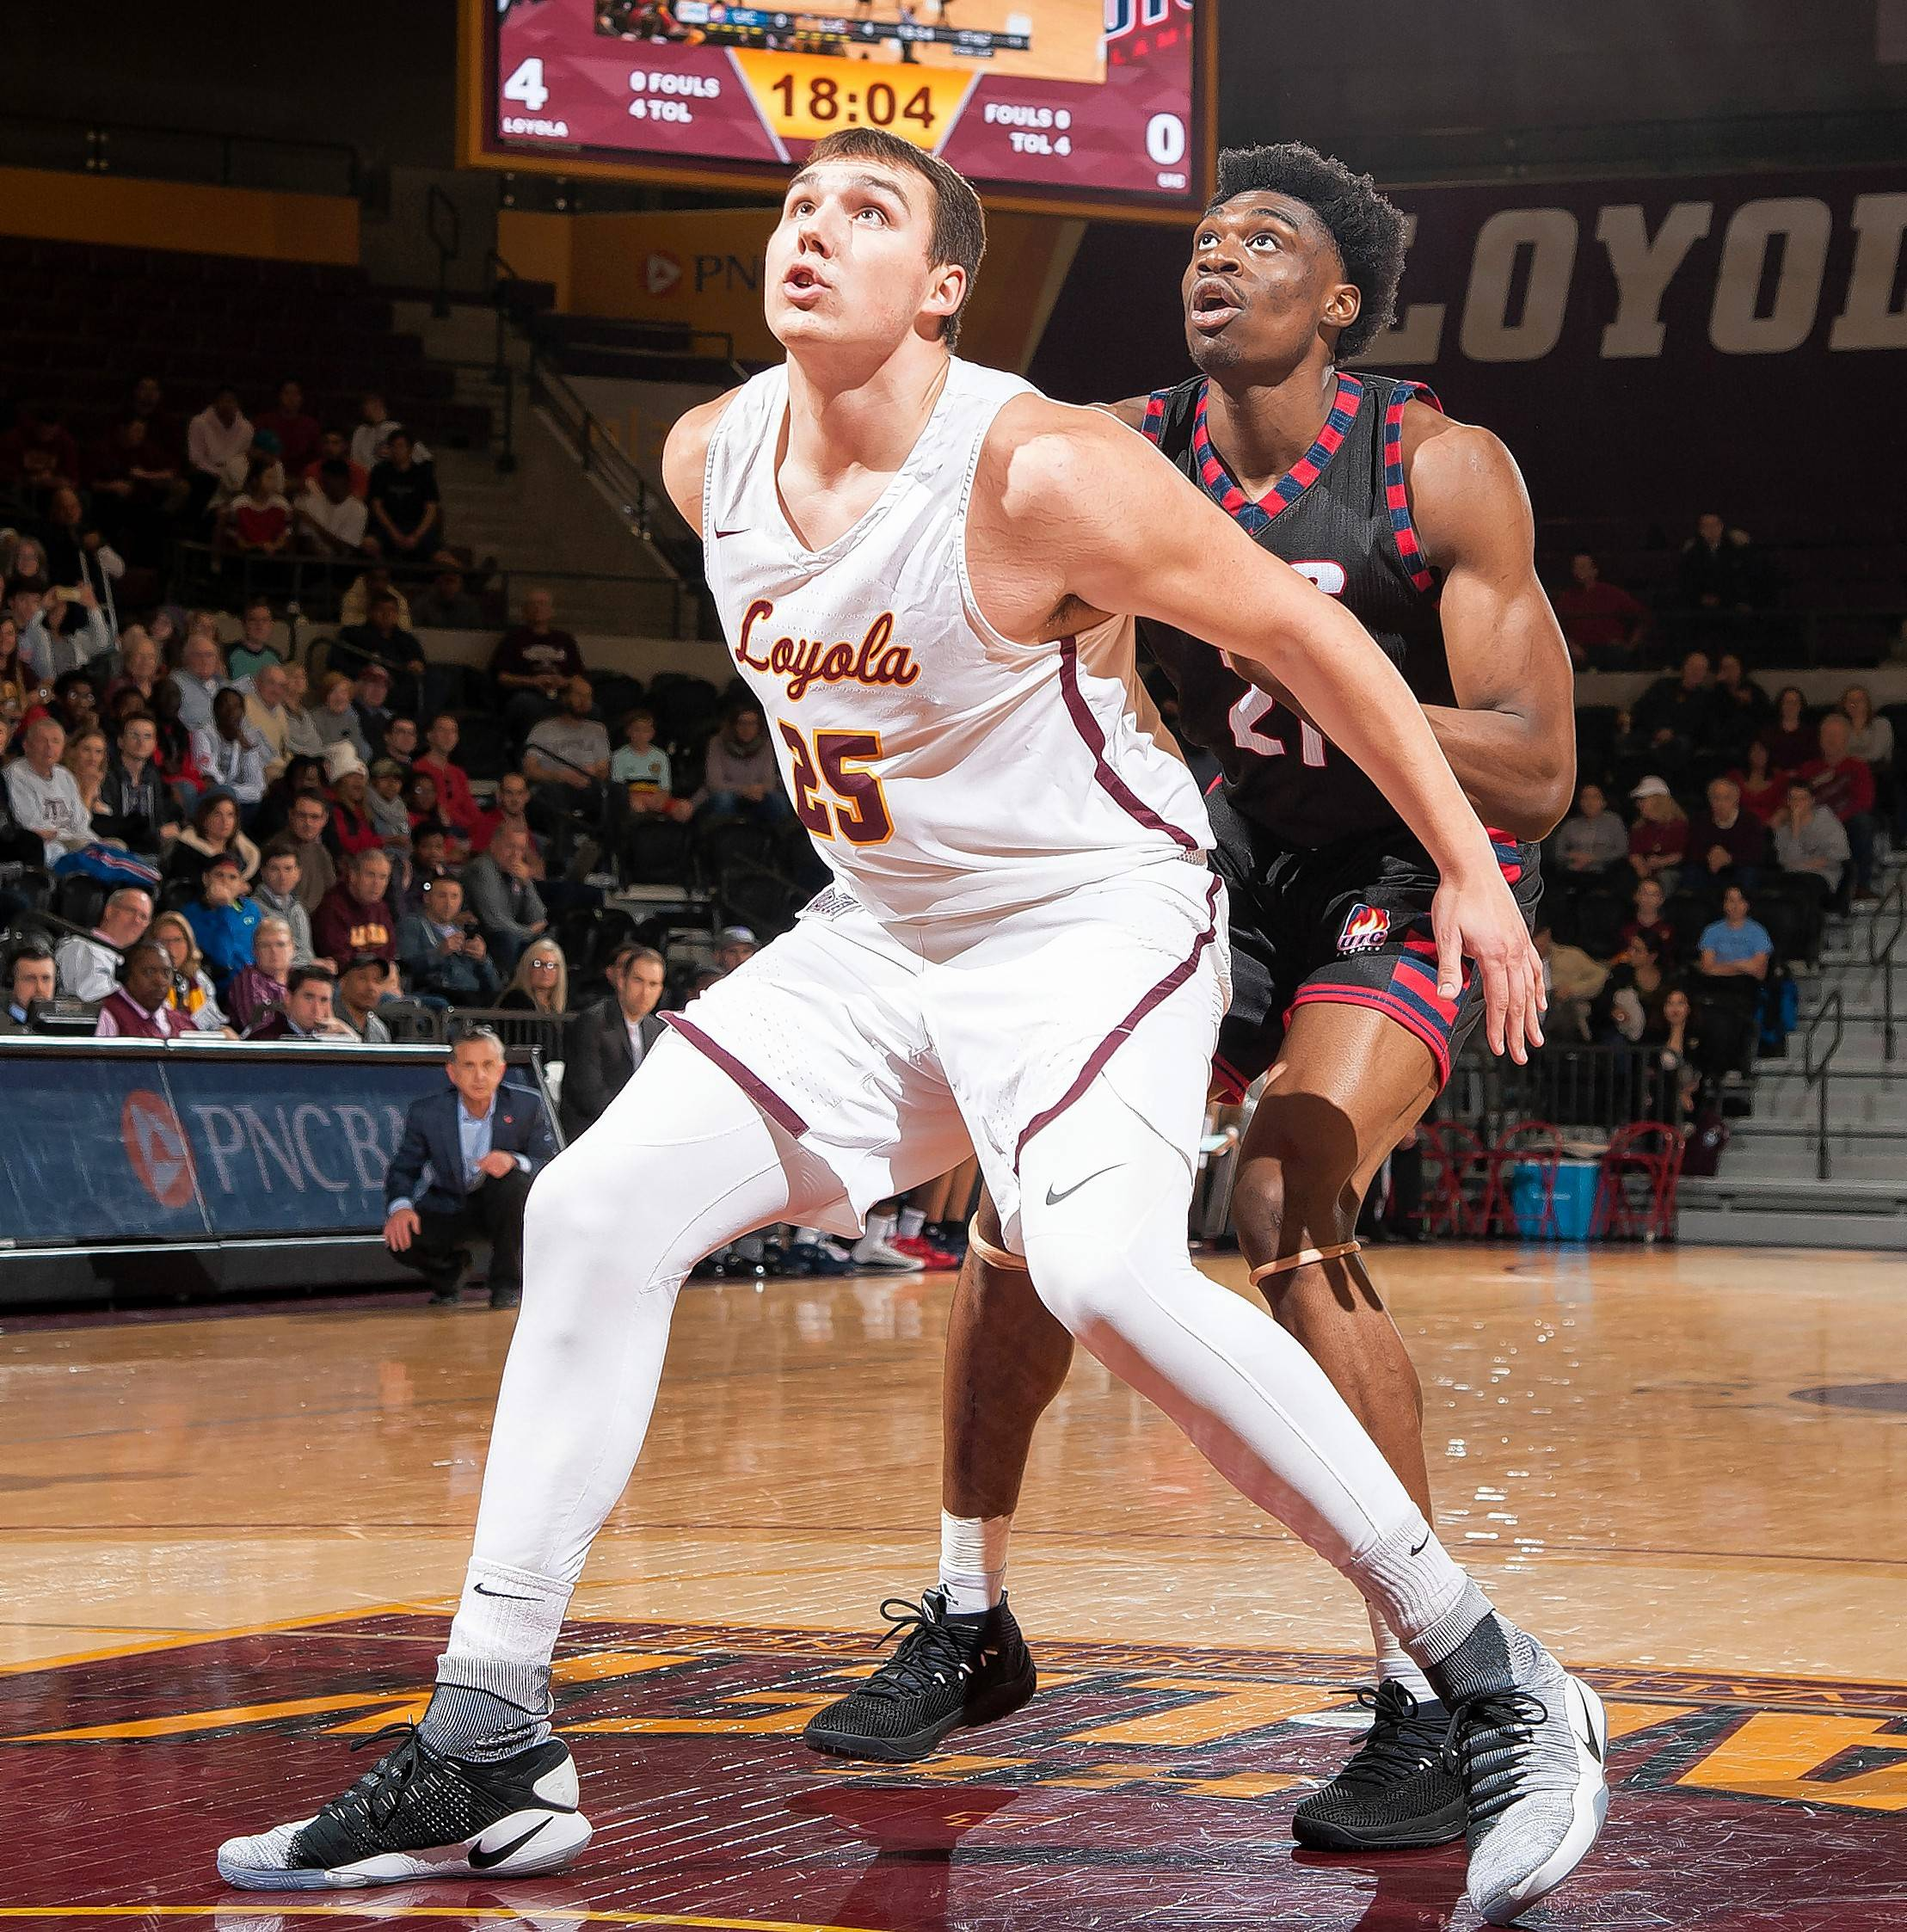 Courtesy of Loyola Athletics/Steve Woltmann Loyola's Cameron Krutwig, a freshman center from Jacobs High School, blocks out in a game against Illinois-Chicago. Krutwig helped Loyola clinch the MVC title last week by averaging 15.5 points and 5.5 rebounds against SIU and Illinois State.